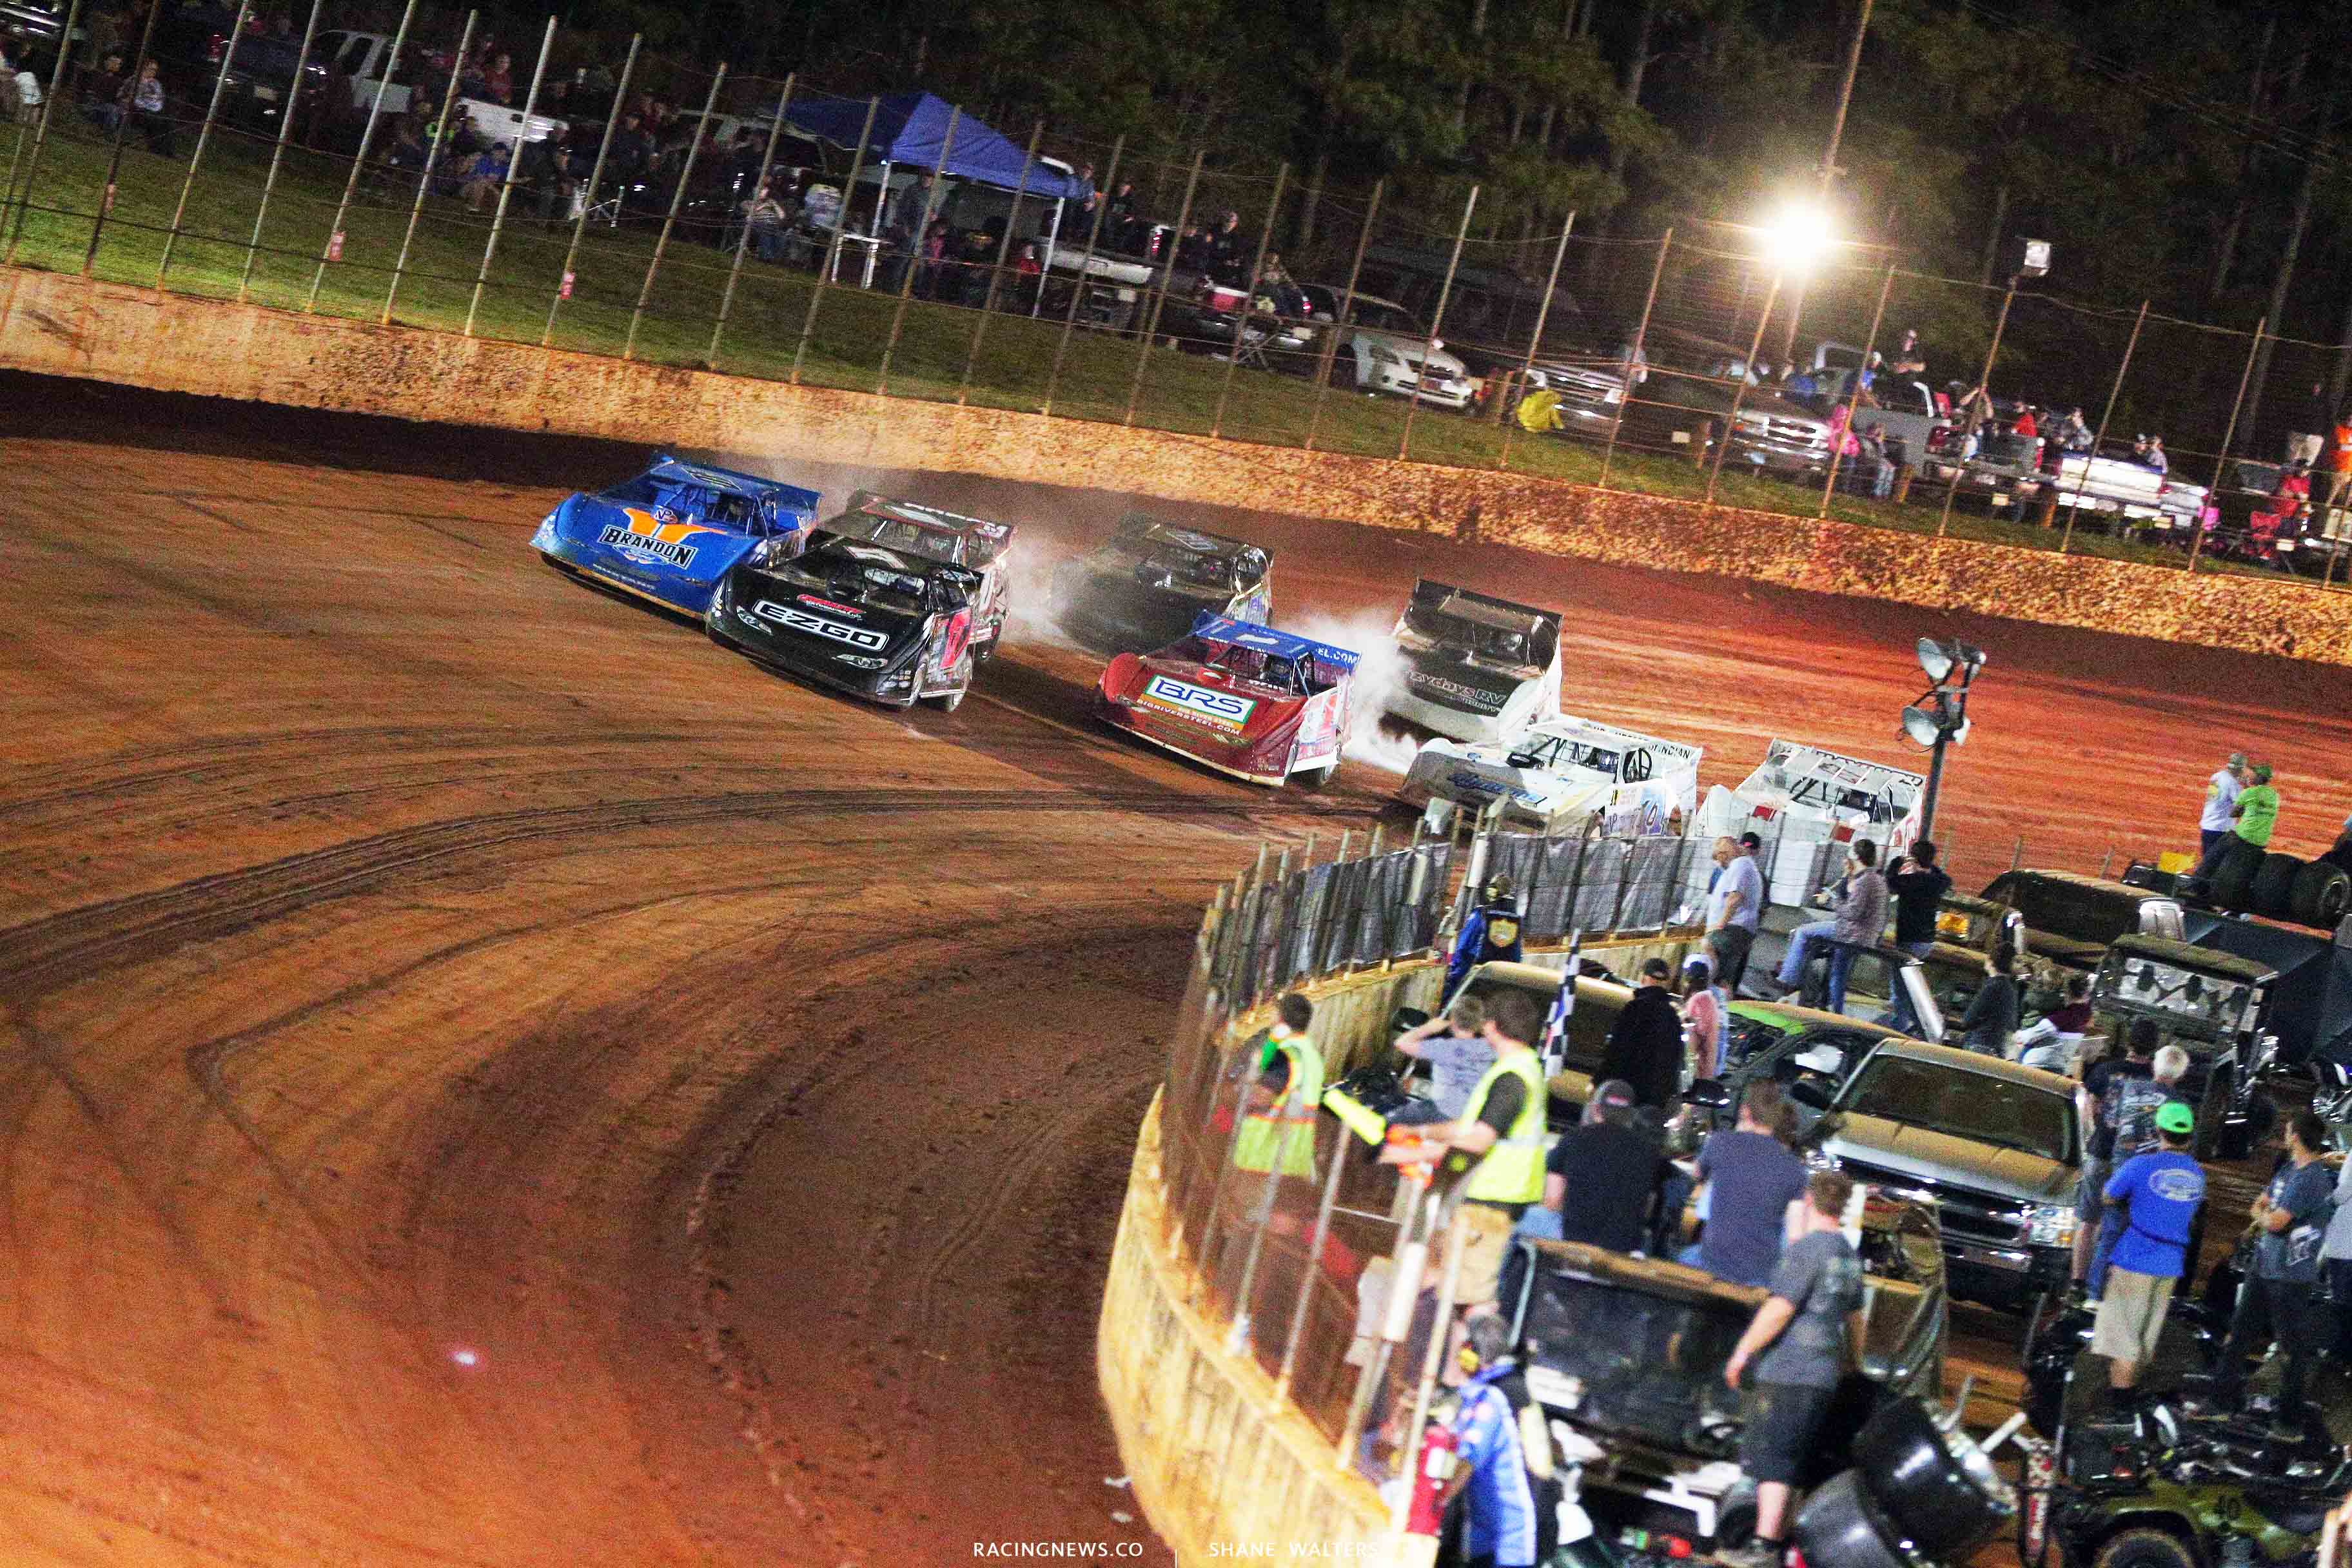 Dale McDowell, Kyle Bronson and Devin Moran at North Georgia Speedway 1810